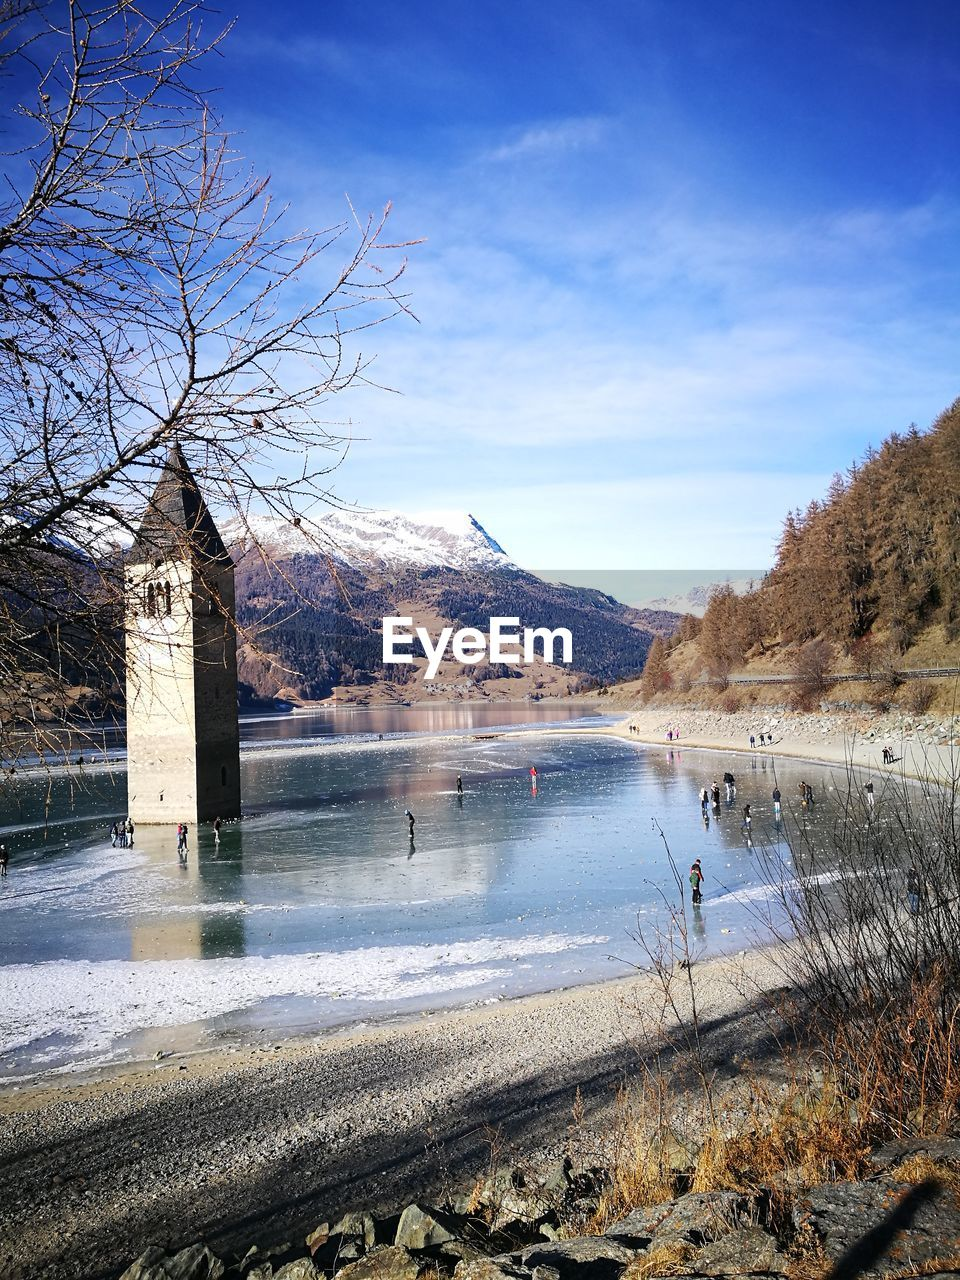 water, lake, nature, beauty in nature, scenics, winter, bare tree, mountain, cold temperature, tranquil scene, tranquility, outdoors, tree, day, no people, sky, snow, landscape, mountain range